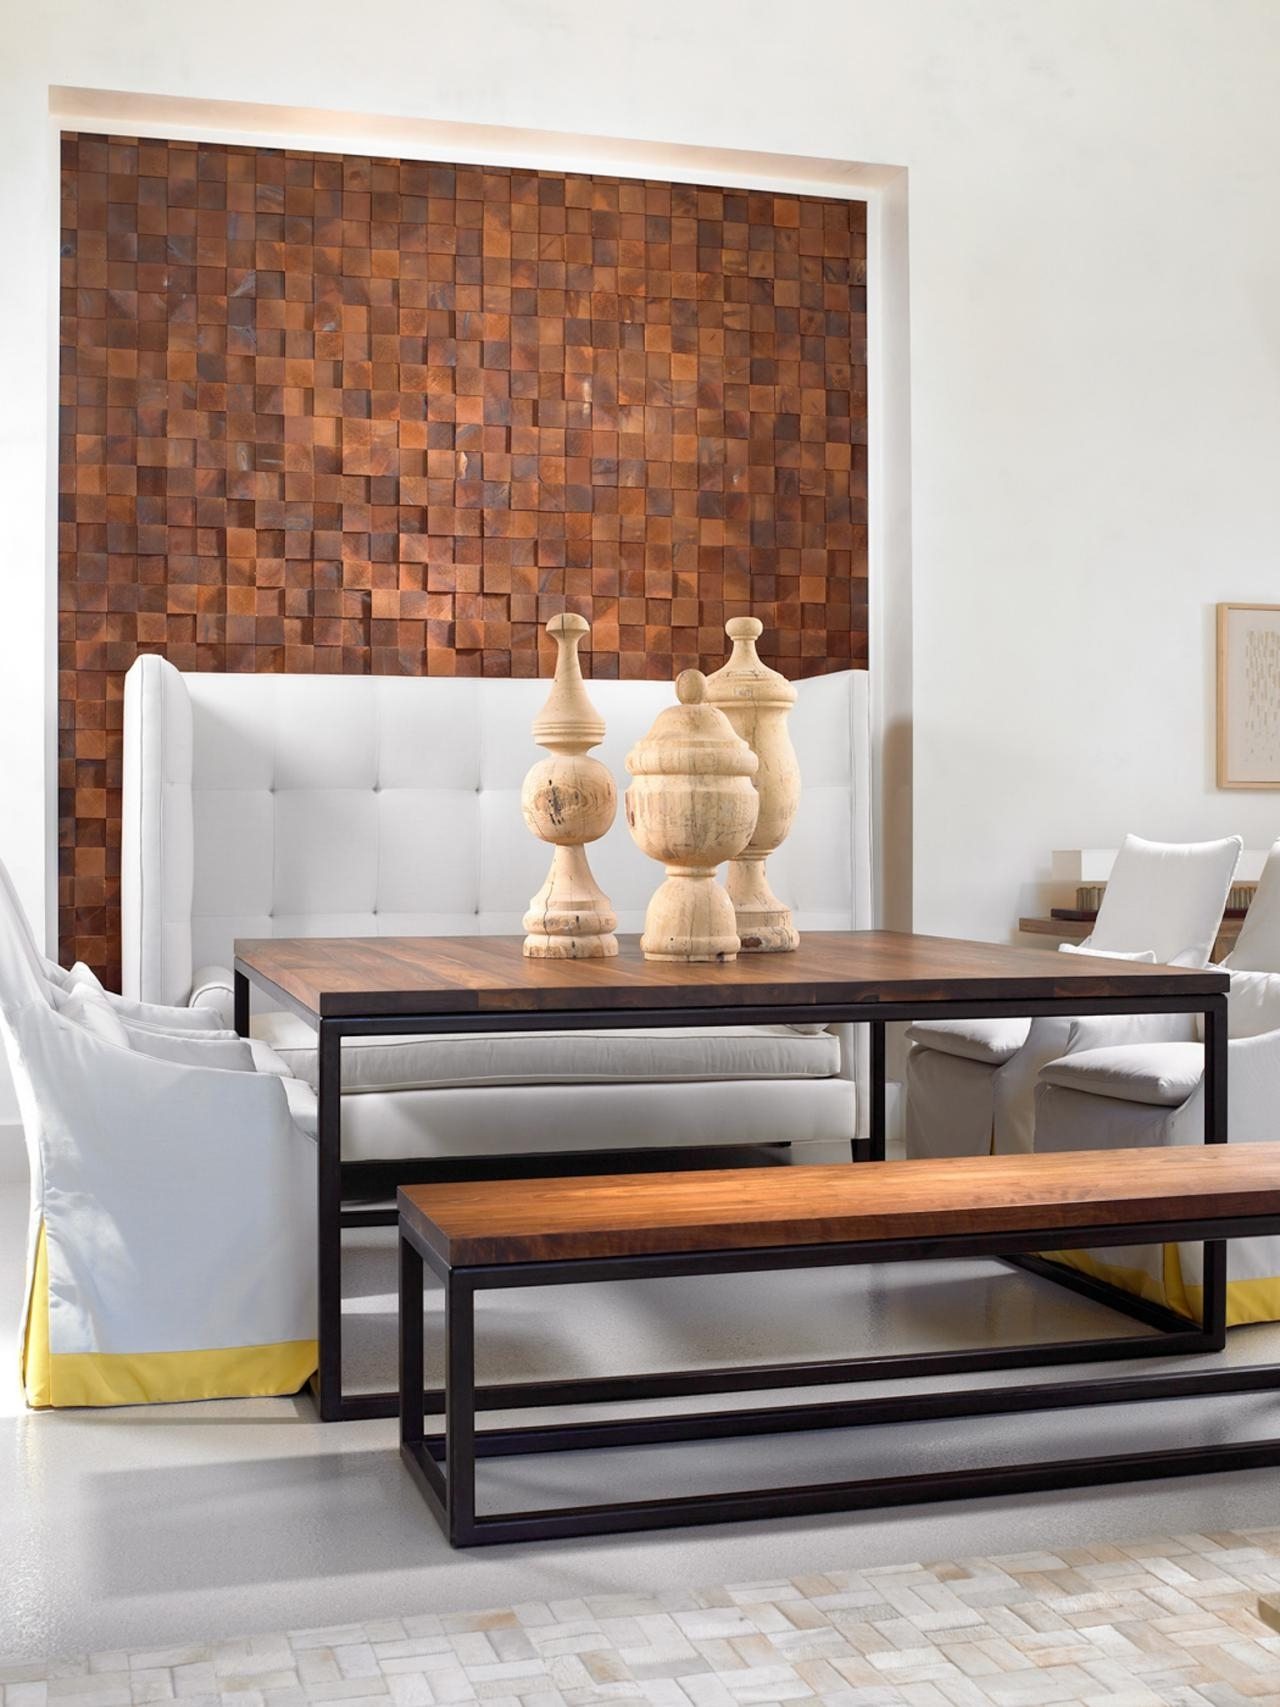 Remarkable Ideas For Wood Accent Wall Features Brown Color Wood With 2018 Wooden Wall Accents (View 13 of 15)